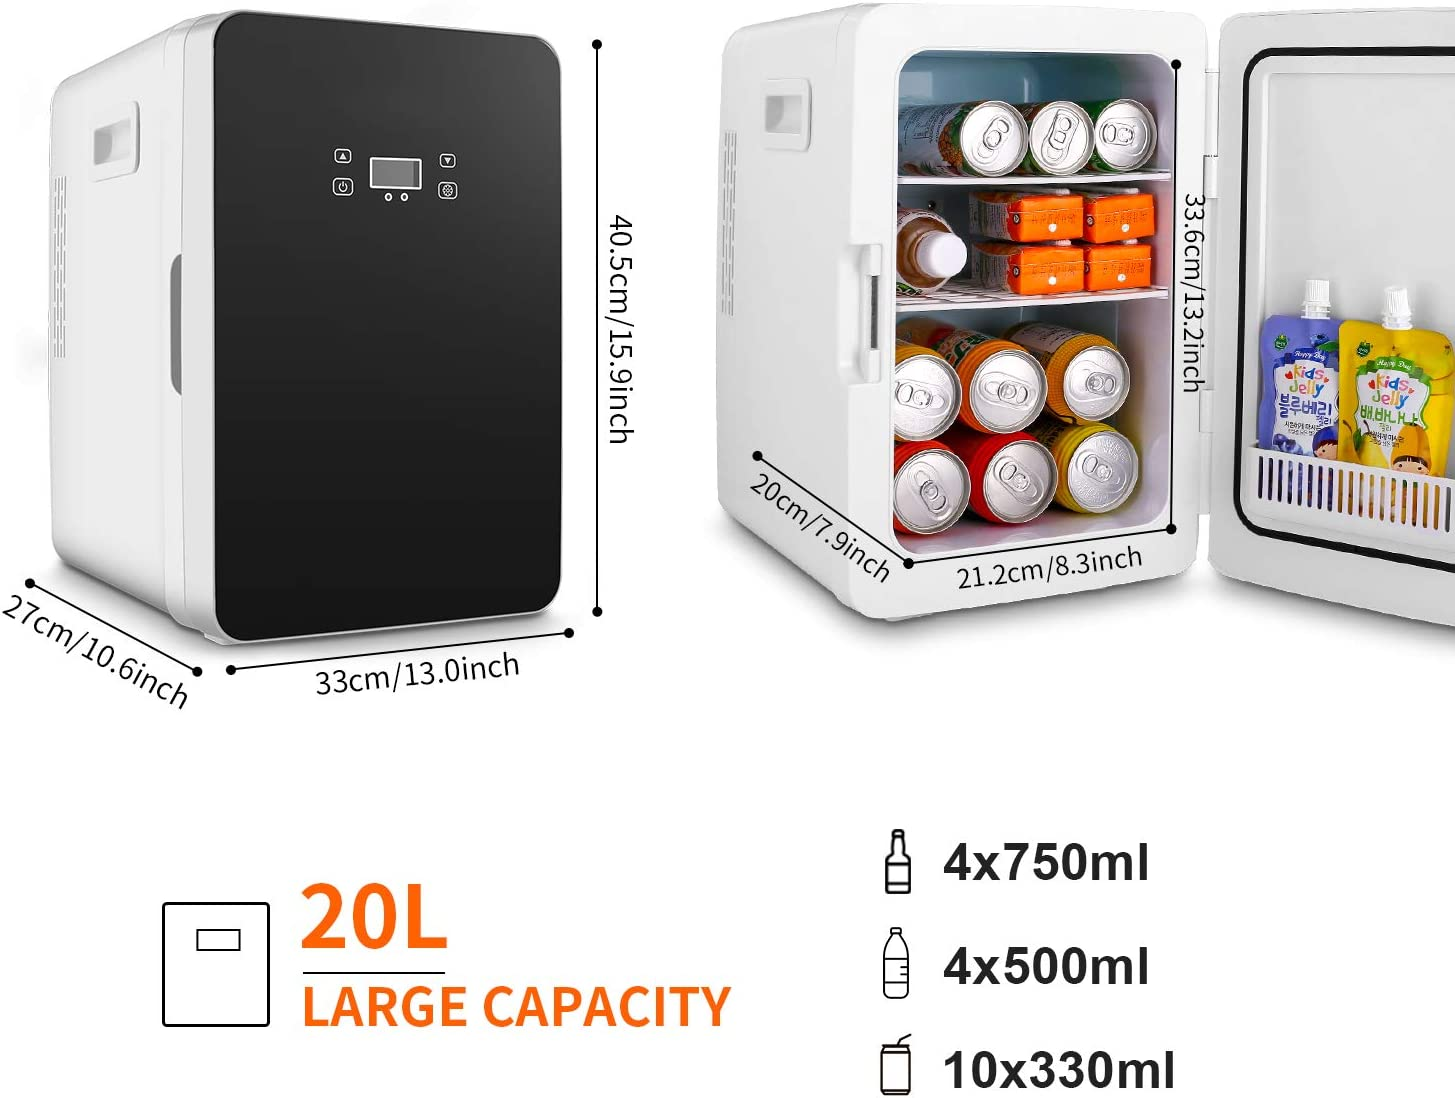 Amazon Promo Code for 20L Mini Fridge Portable Compact Refrigerator